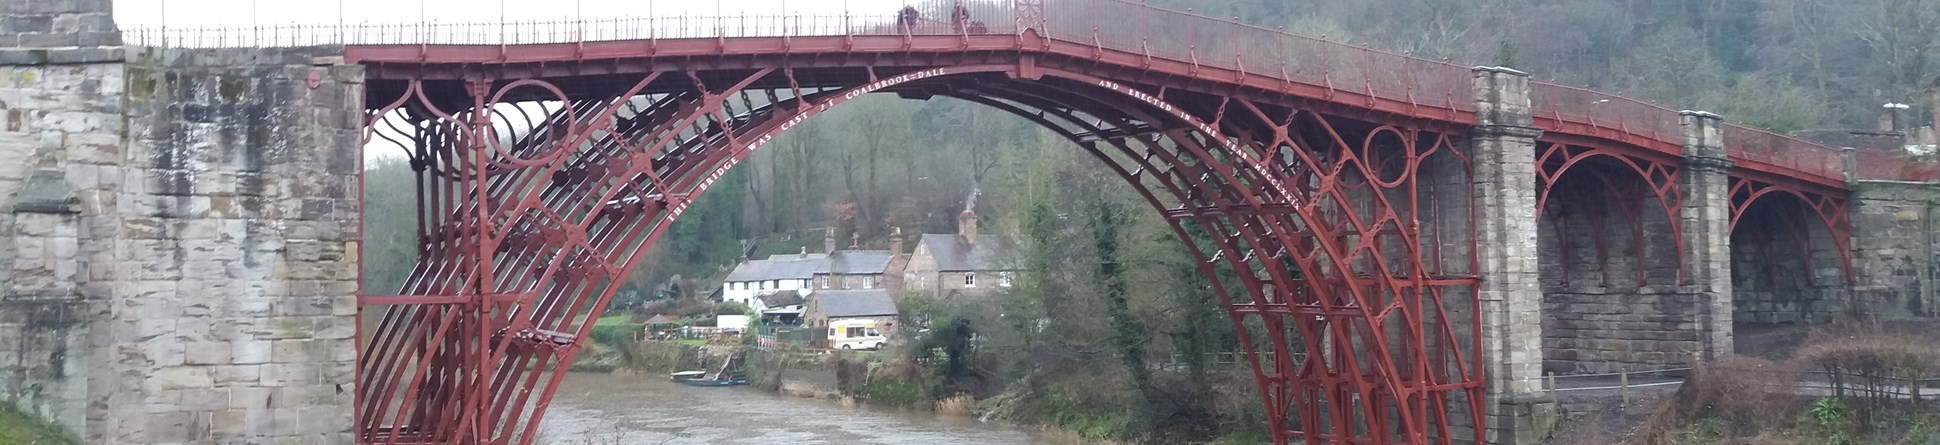 The Iron Bridge within the Ironbridge Gorge World Heritage Site, following the 2017/18 conservation project by English Heritage